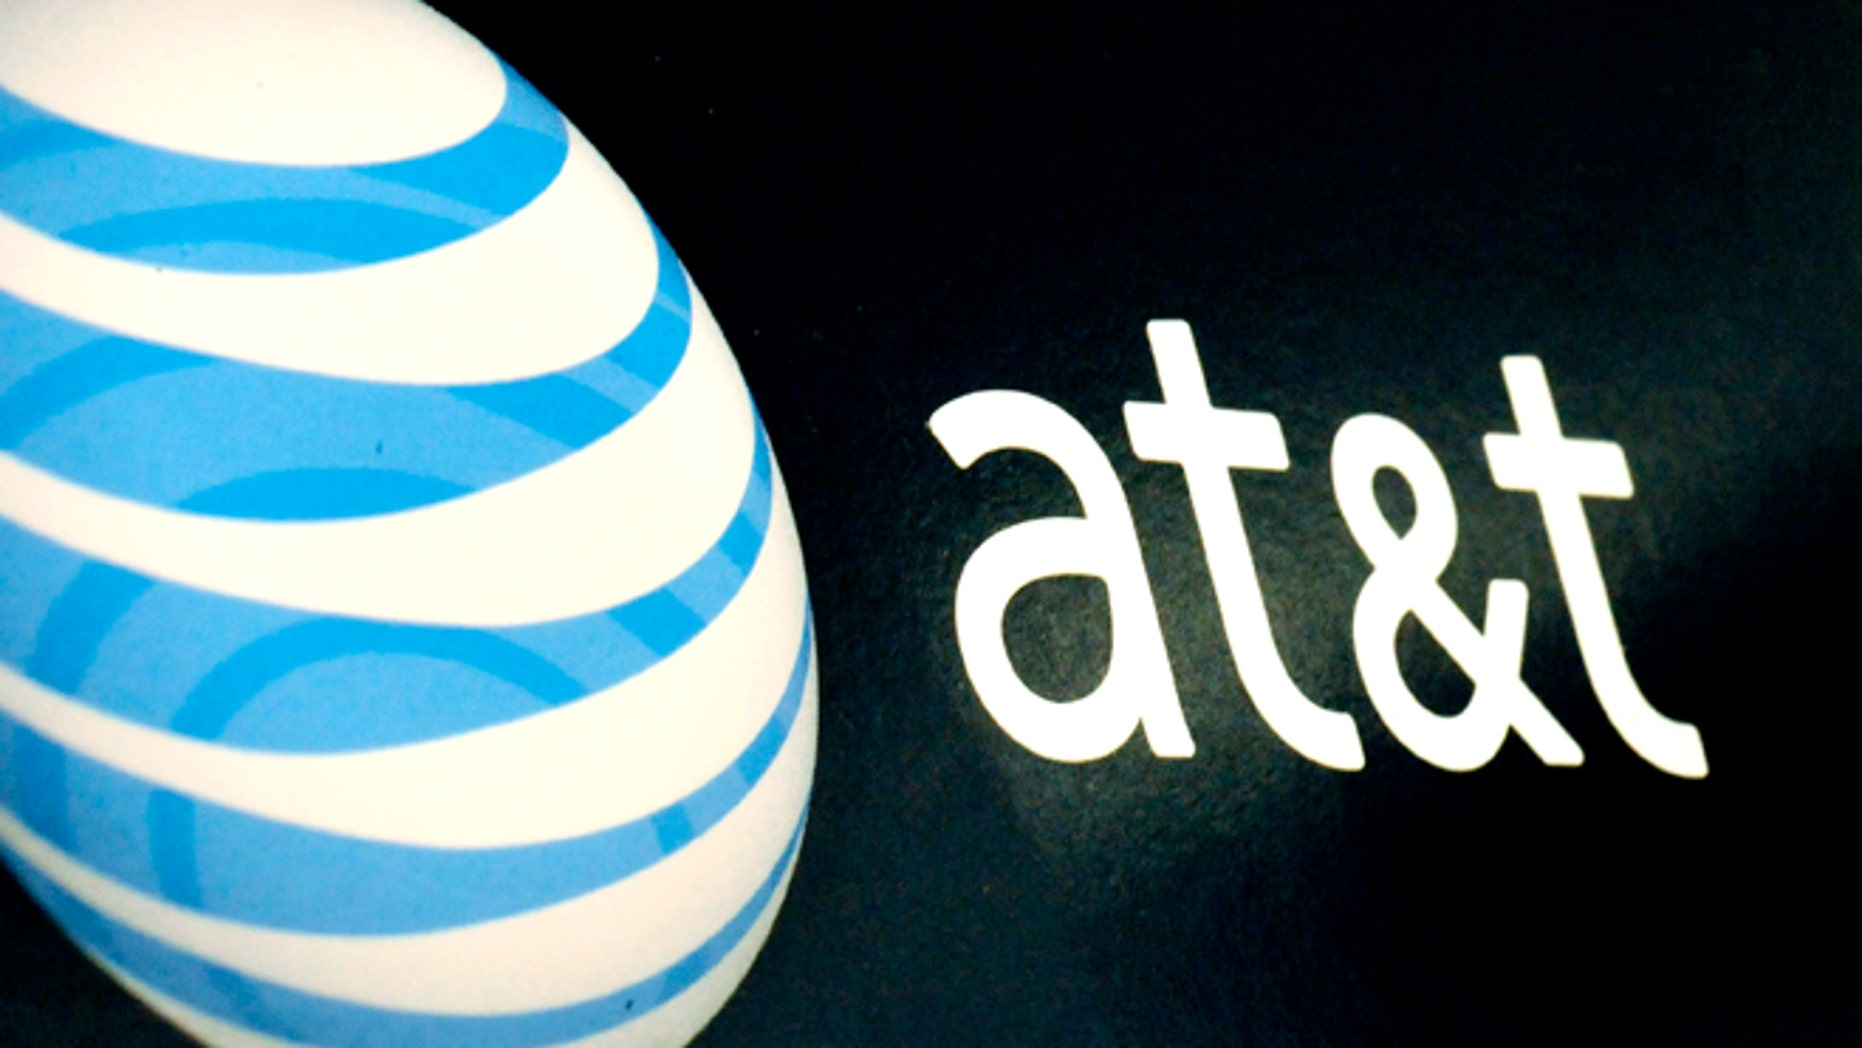 The AT&T logo is on display at a RadioShack store in Gloucester, Mass.